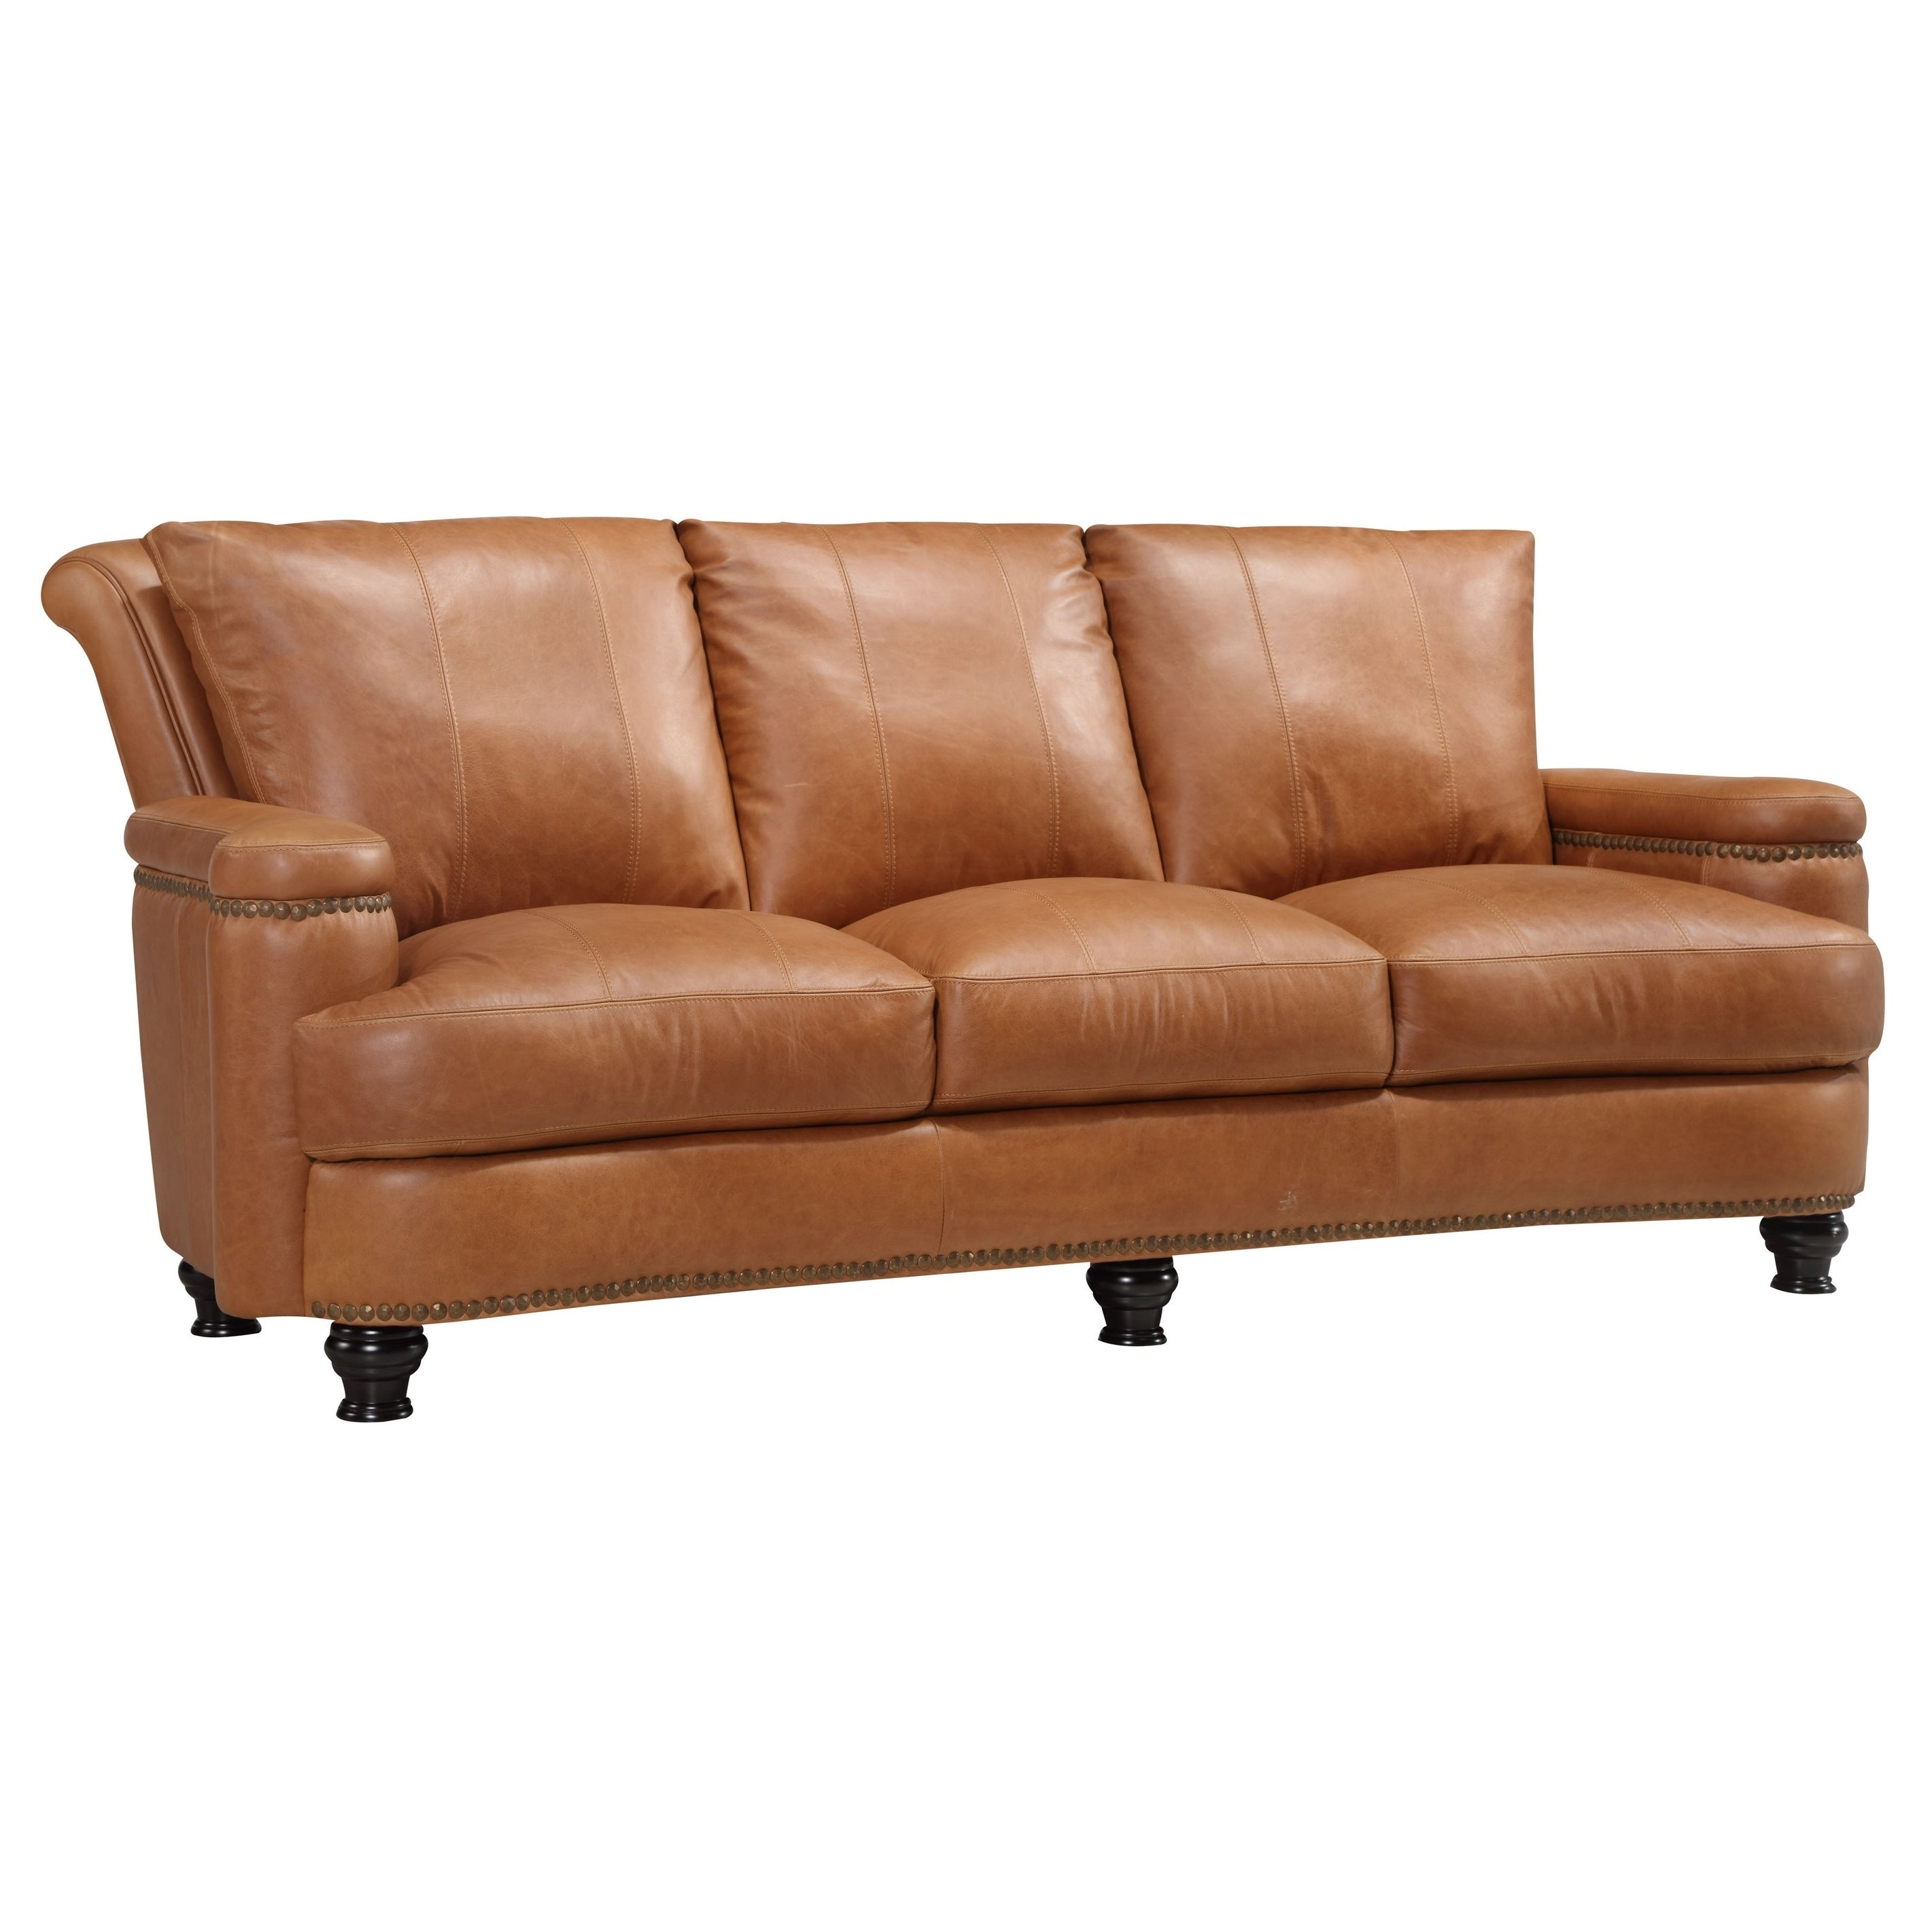 Exceptionnel Shop Nathan Top Grain Italian Leather Sofa   Free Shipping Today    Overstock.com   18007978